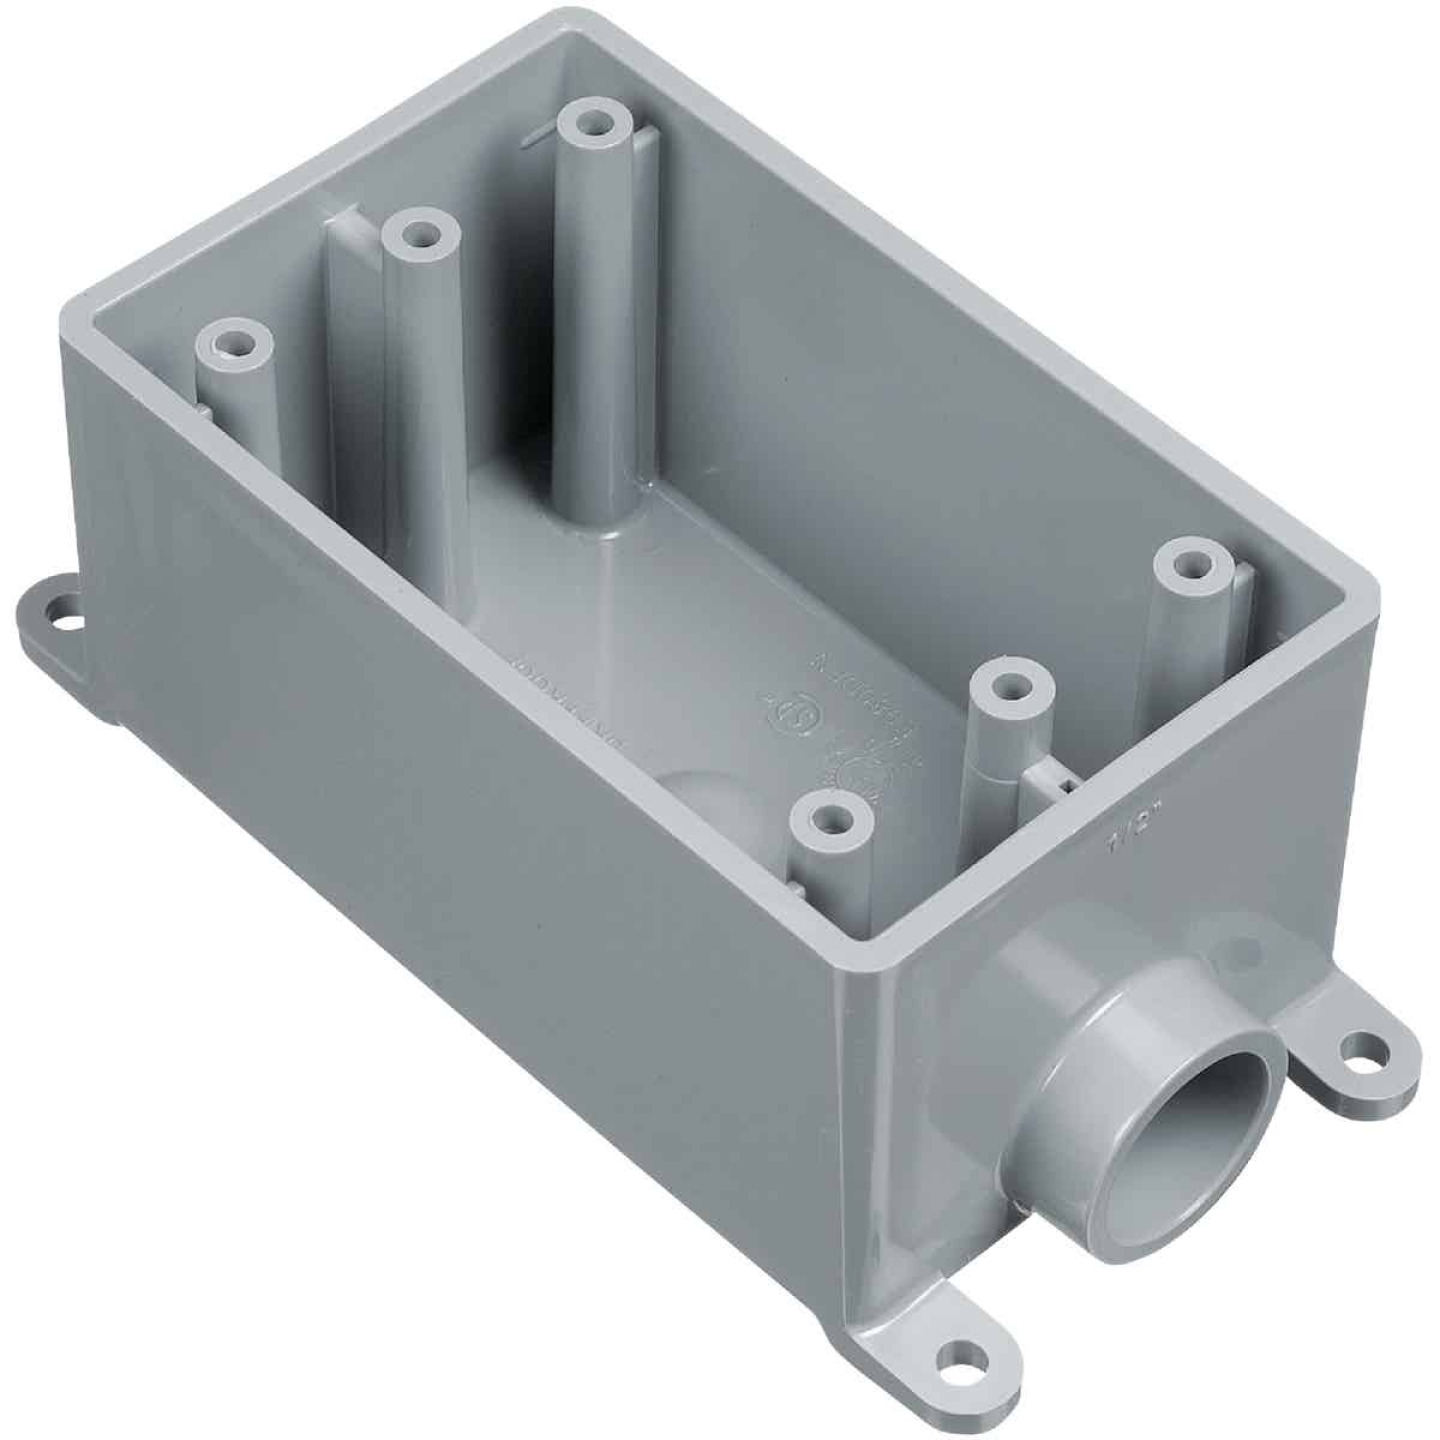 Carlon 1-Gang PVC Molded Rigid Non-Metallic Dead-End Termination Wall Box, 3/4 In. Outlet Image 1